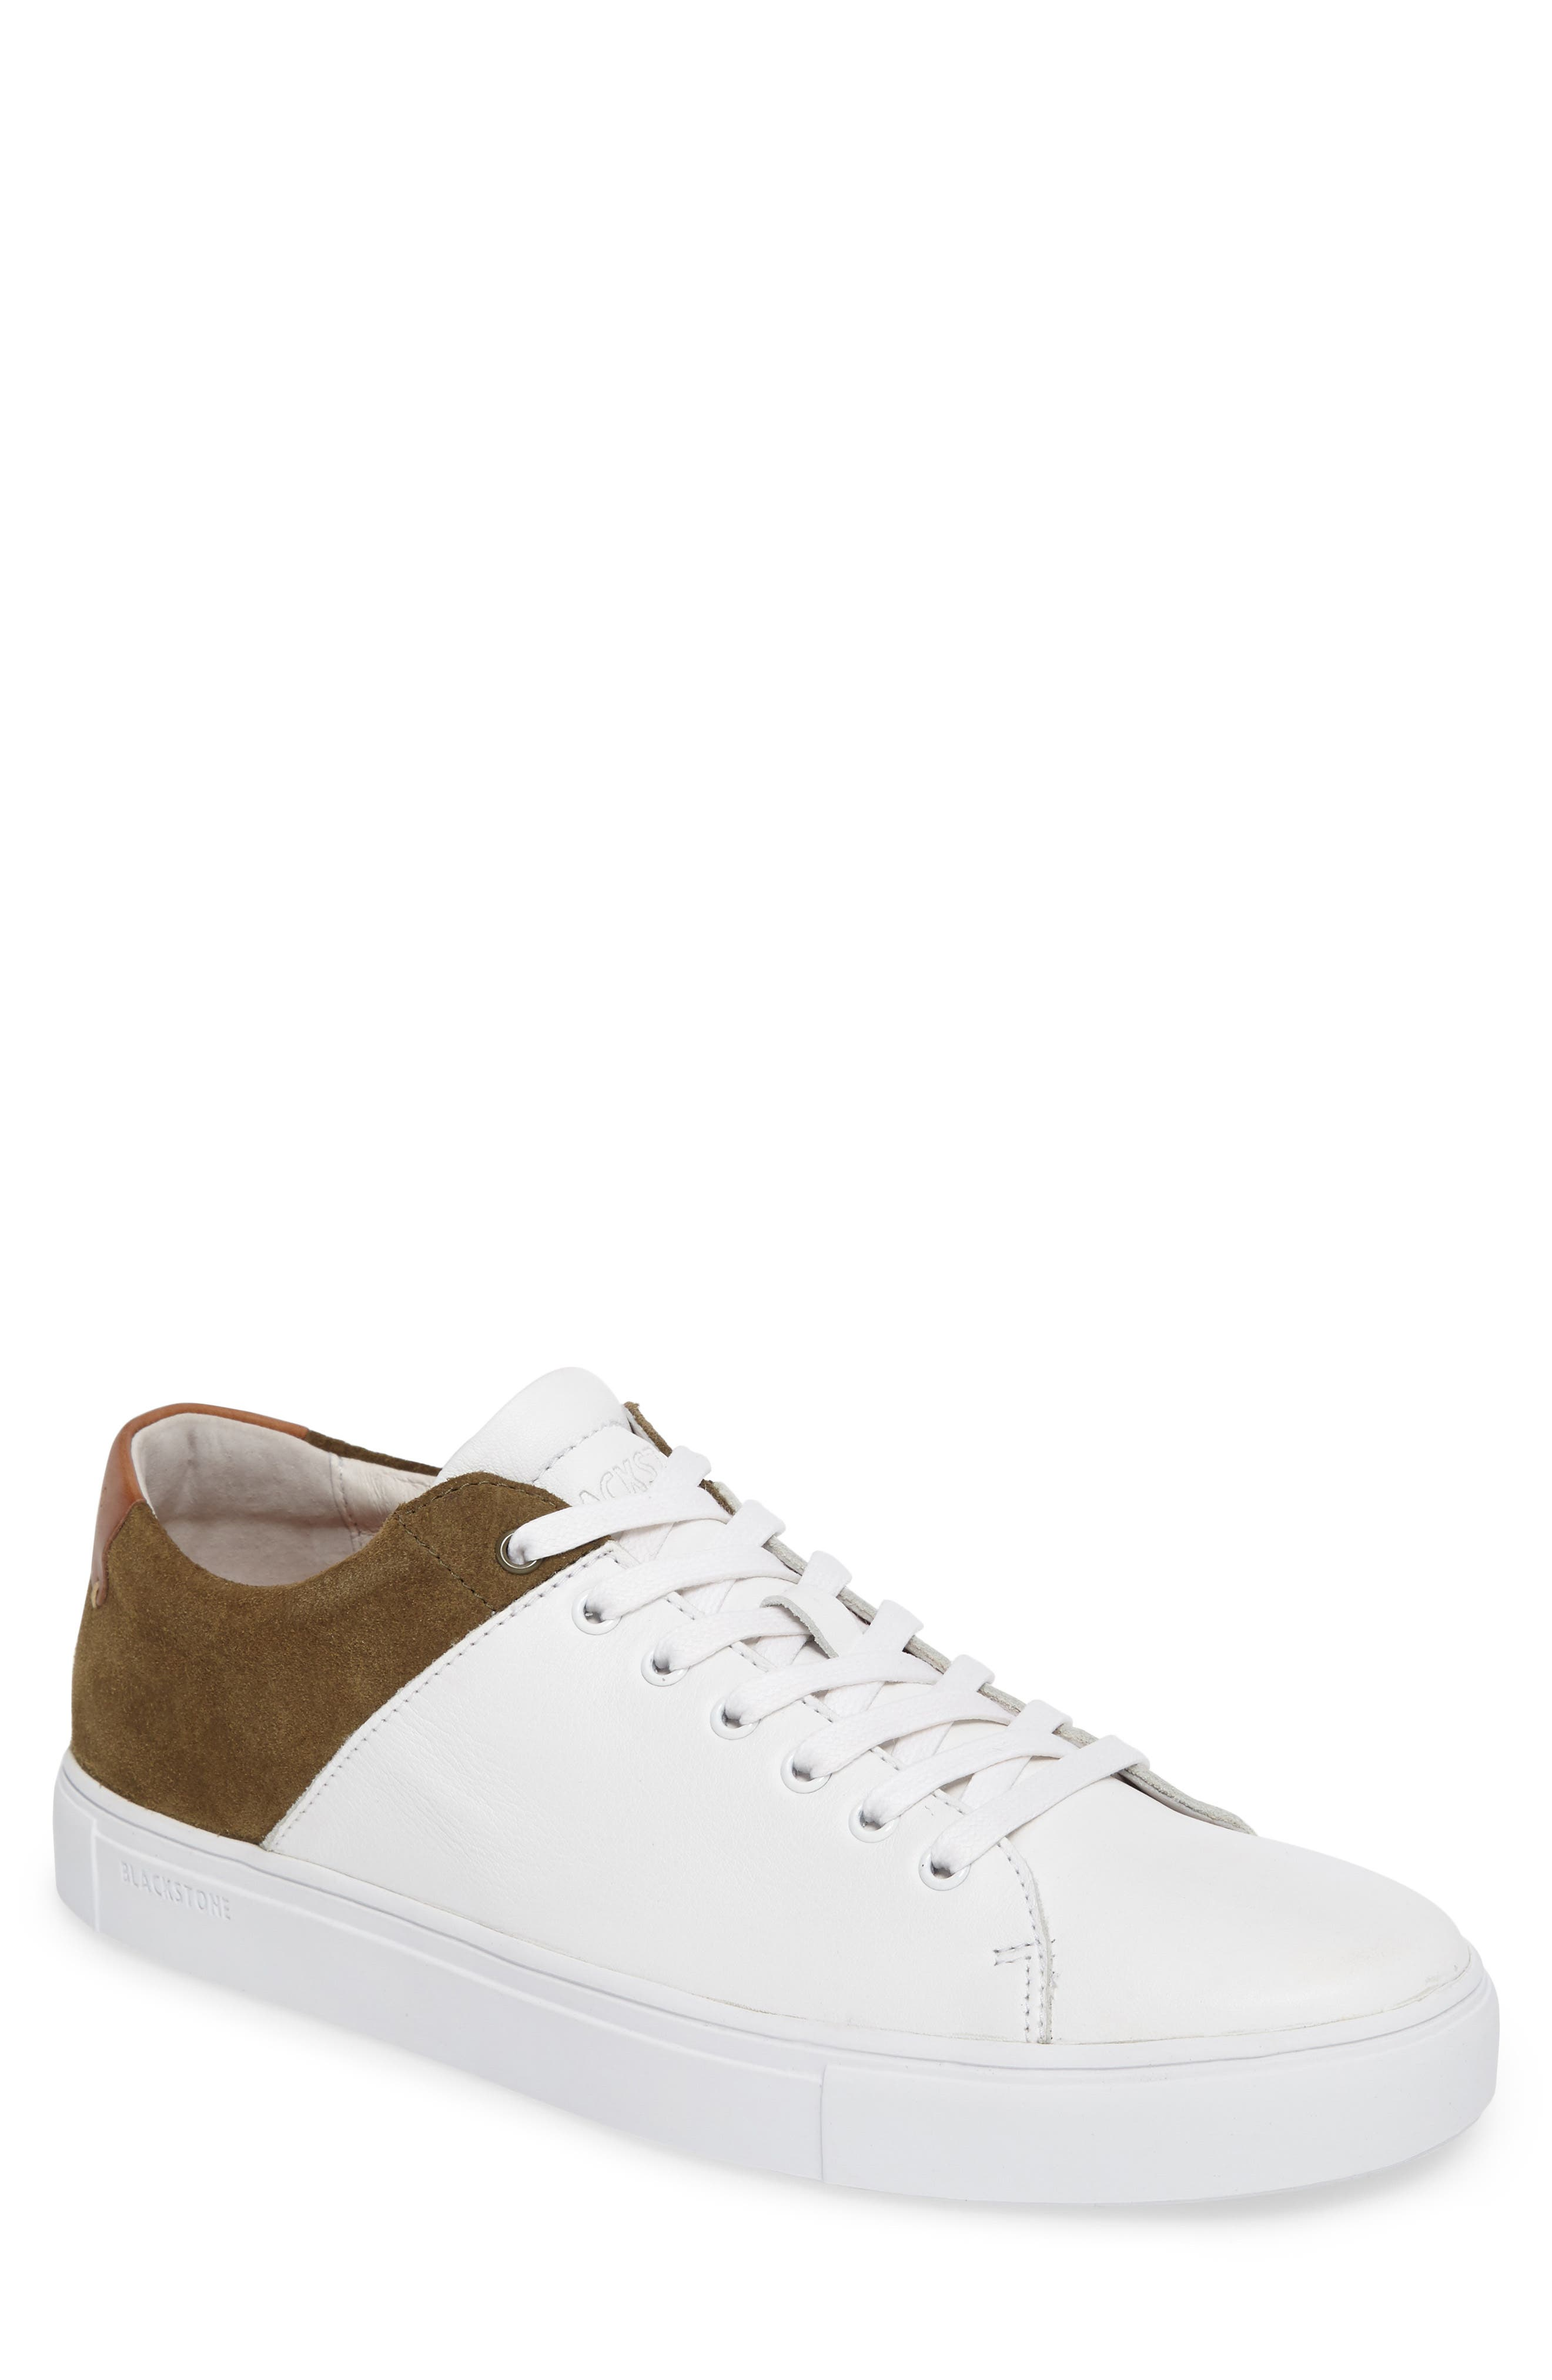 NM03 Two-Tone Sneaker,                         Main,                         color,